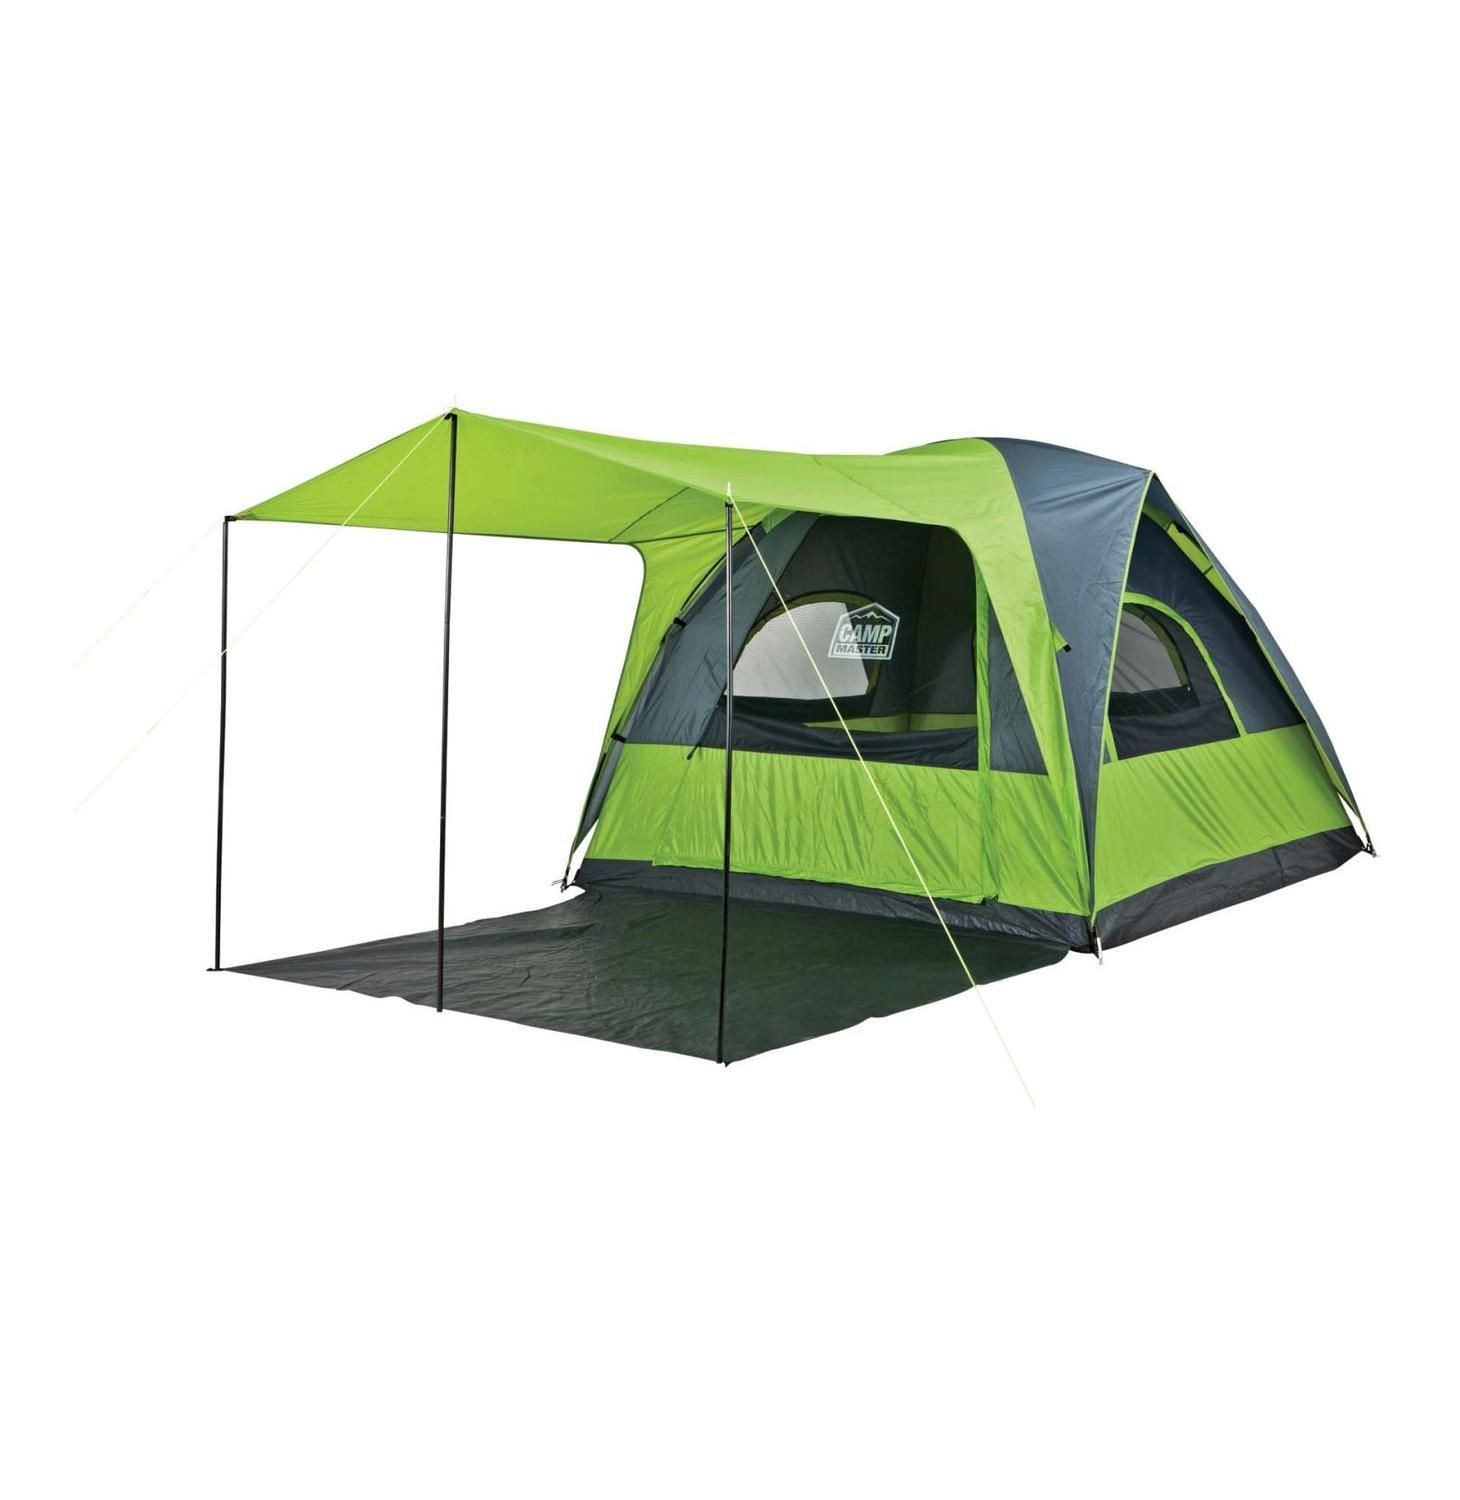 campmaster camp dome 410 tent makro online camping and